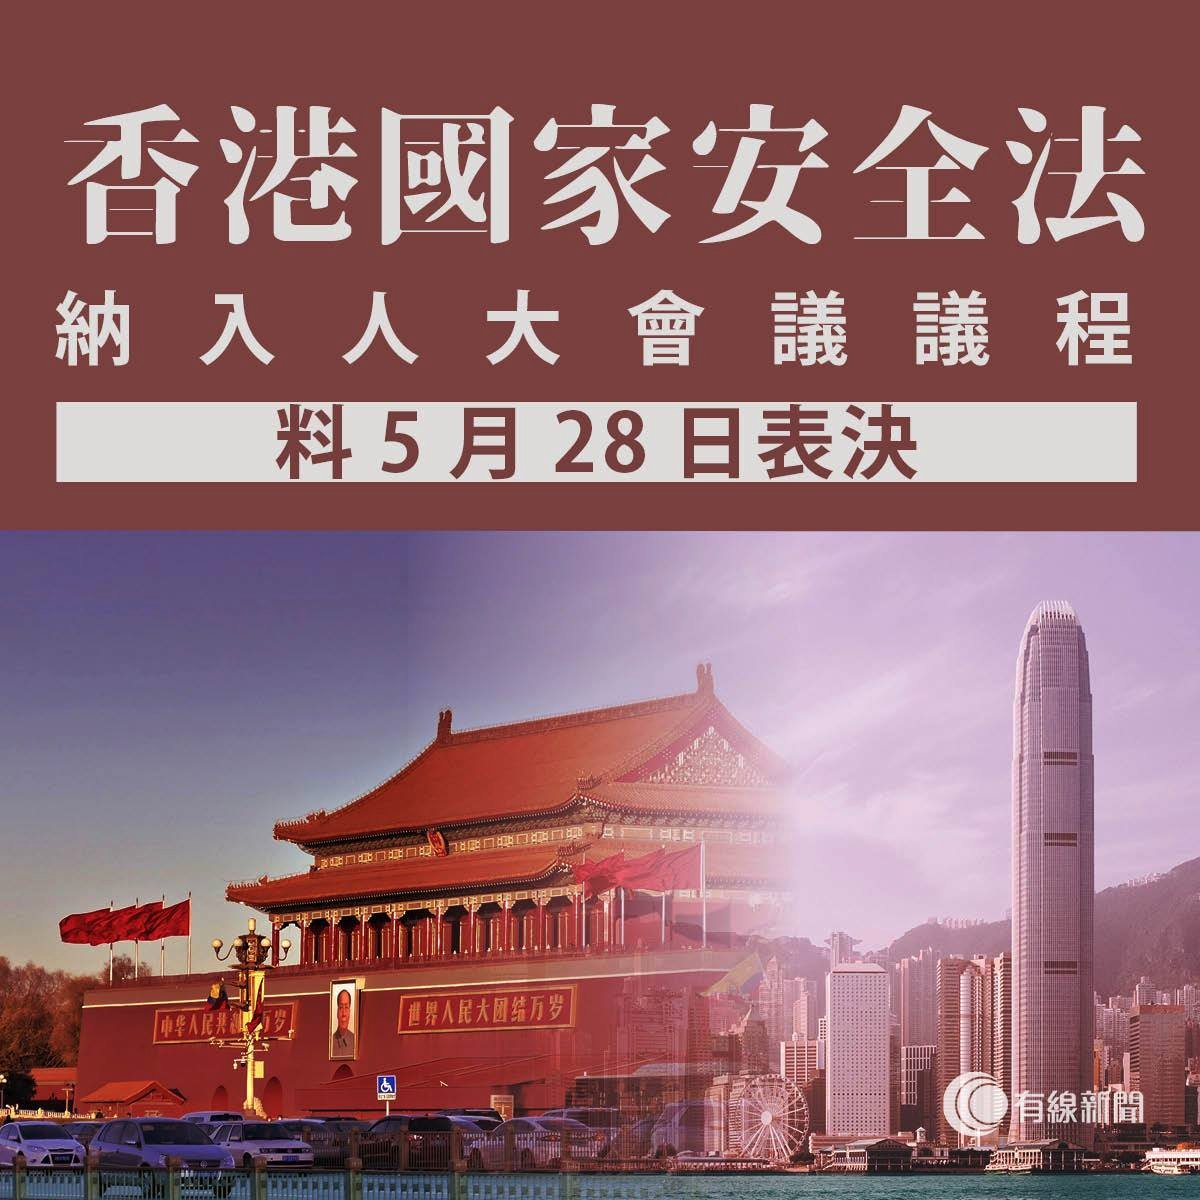 #China's National People's Congress #NPC has just included #HK's new #nationalsecuritylaw as the 5th agenda item. Source told that the law will be immediately passed on May 28, with any HK's legislative scrutiny. https://twitter.com/joshuawongcf/status/1263392830560653316…pic.twitter.com/nDivzeQZvg